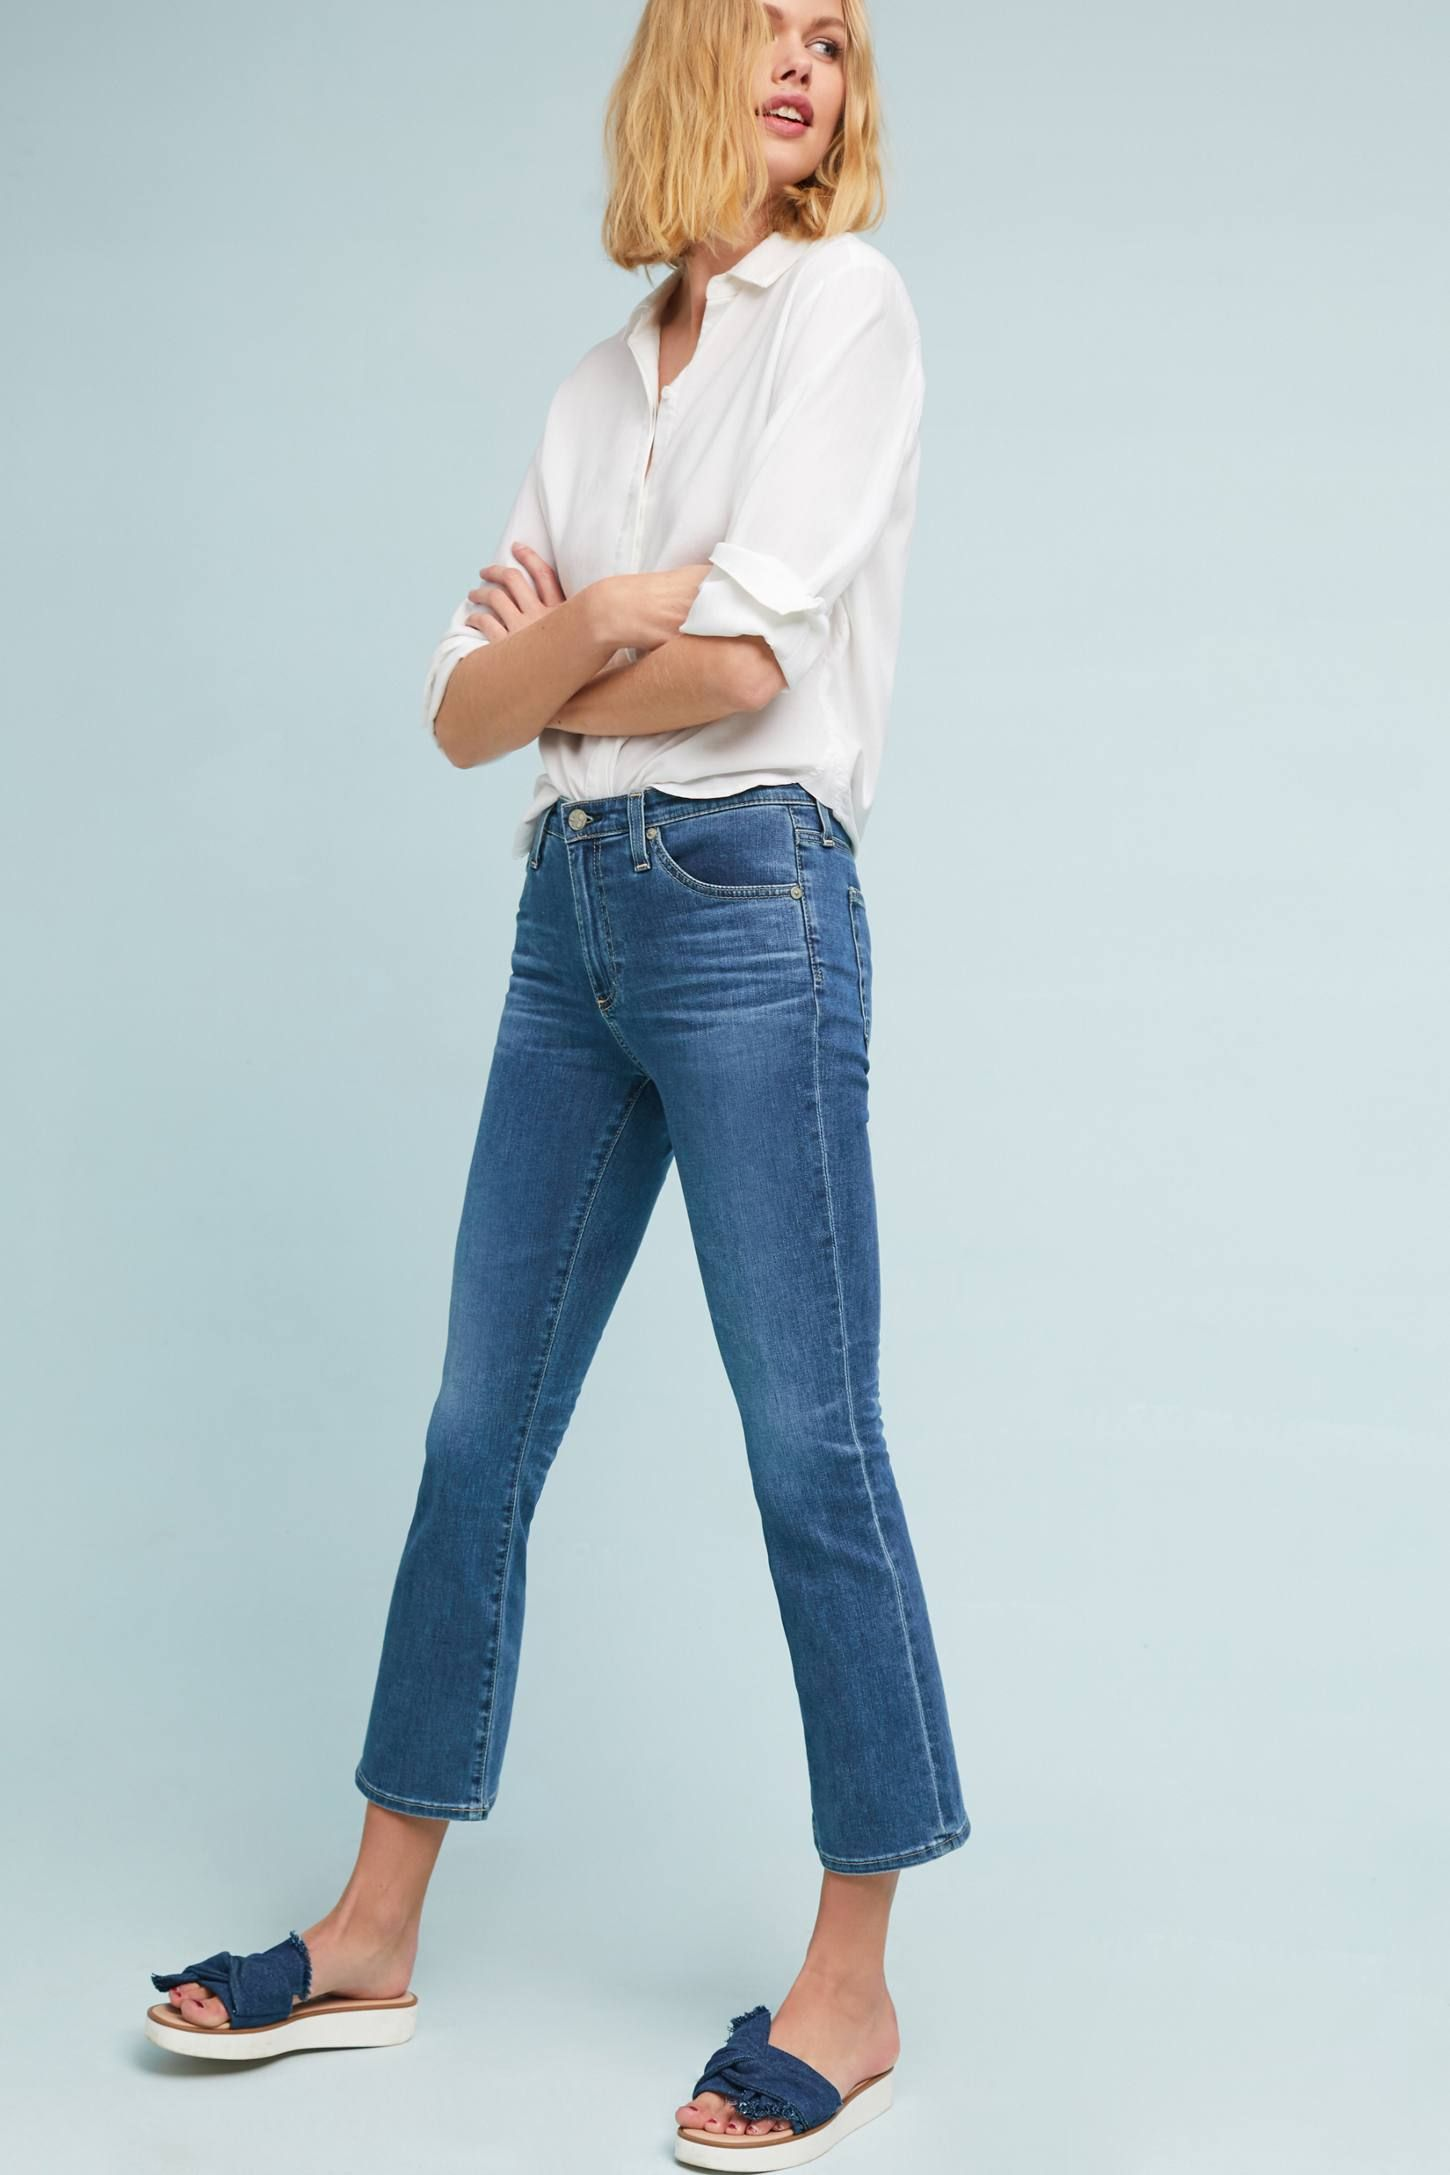 30fcea63224 Shop the AG The Jodi High-Rise Cropped Flare Jeans and more Anthropologie  at Anthropologie today. Read customer reviews, discover product details and  more.